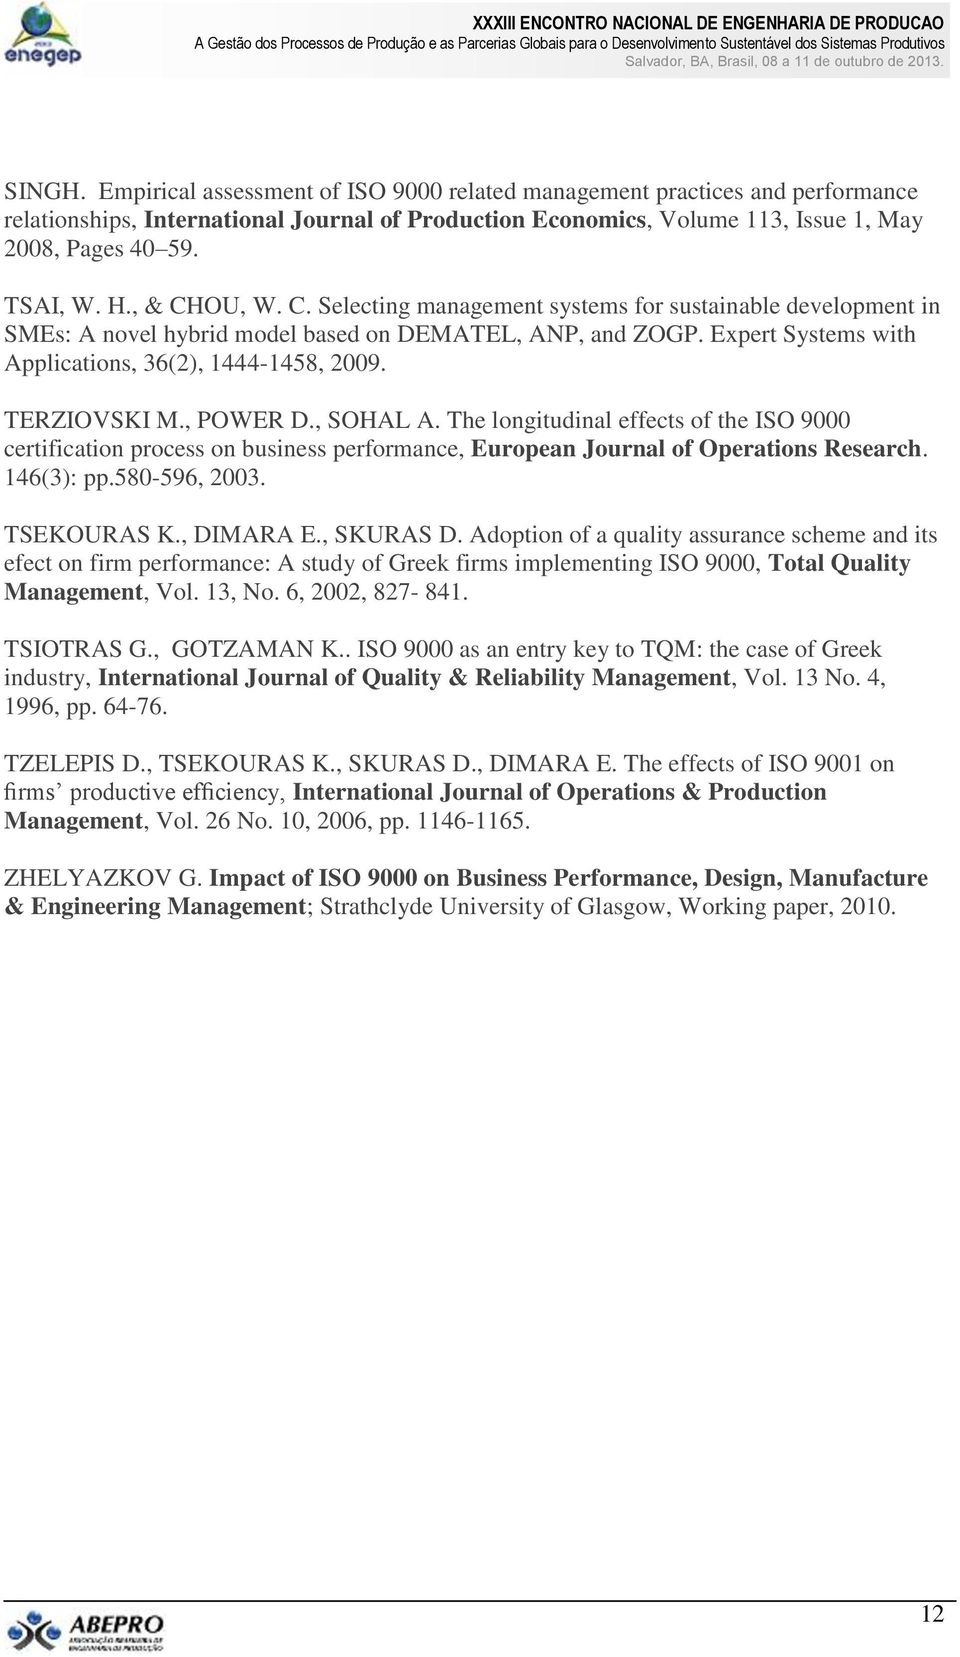 TERZIOVSKI M., POWER D., SOHAL A. The longitudinal effects of the ISO 9000 certification process on business performance, European Journal of Operations Research. 146(3): pp.580-596, 2003.